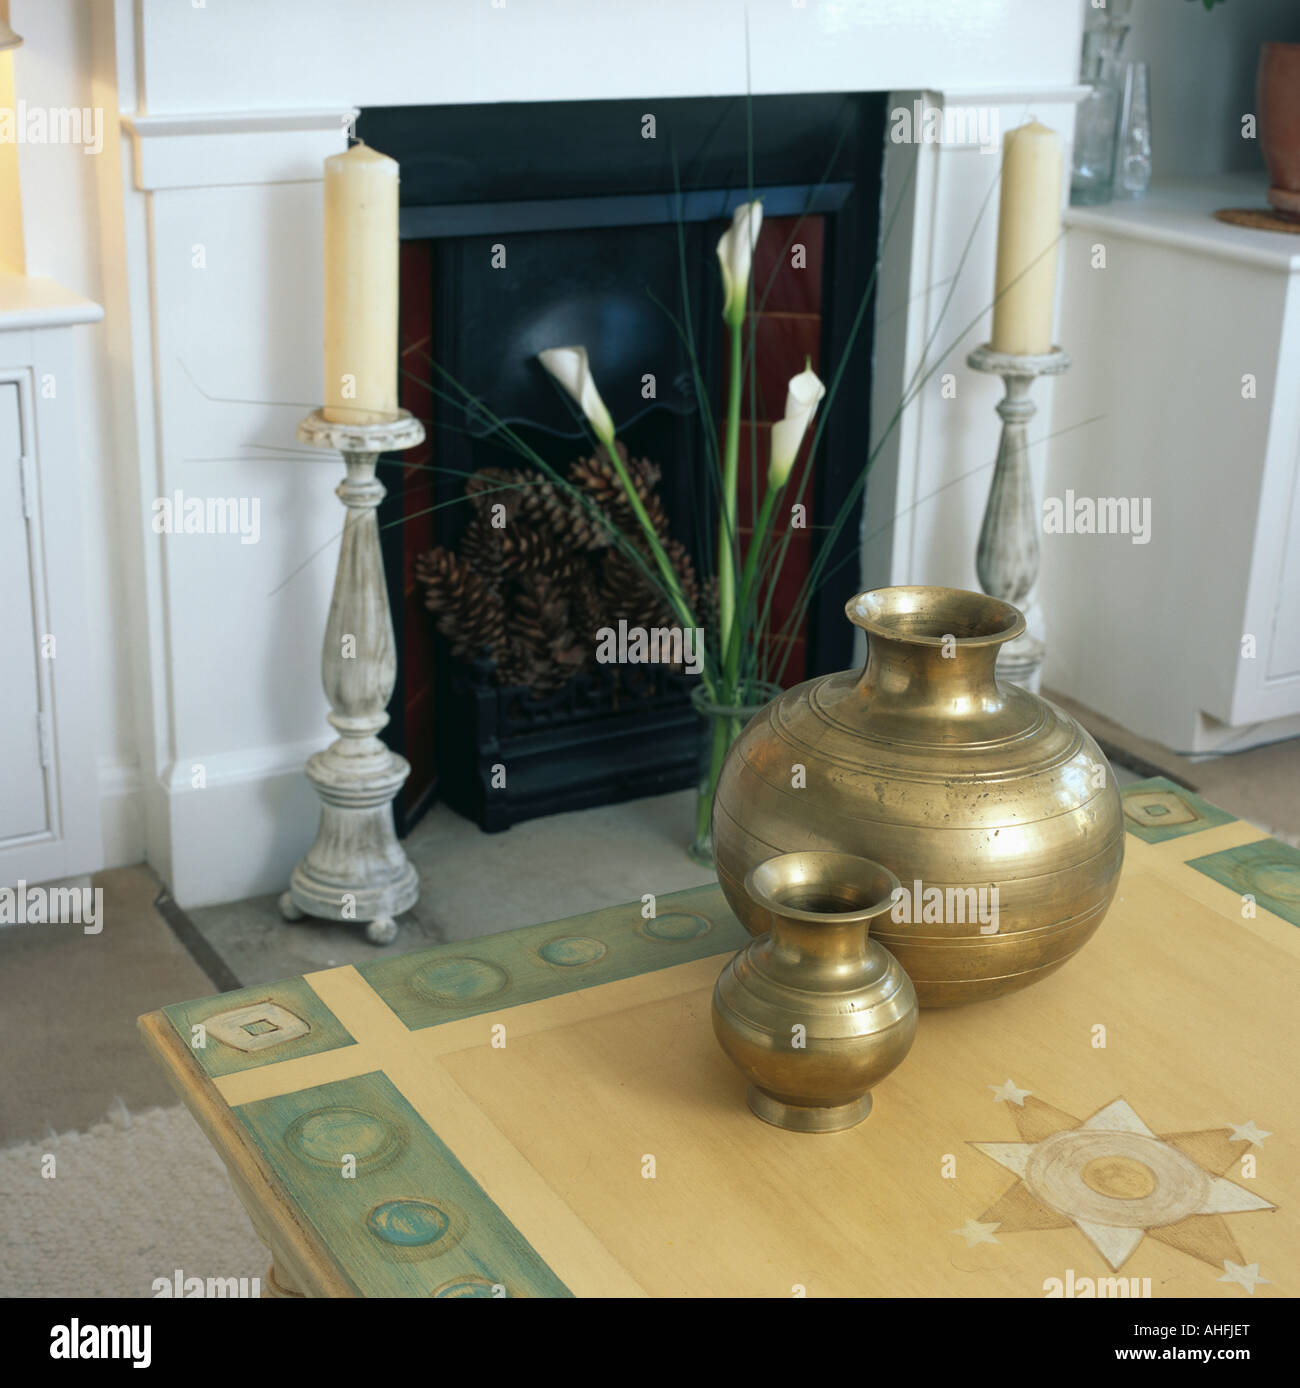 brass turkish pots on table in front of fireplace with candles in